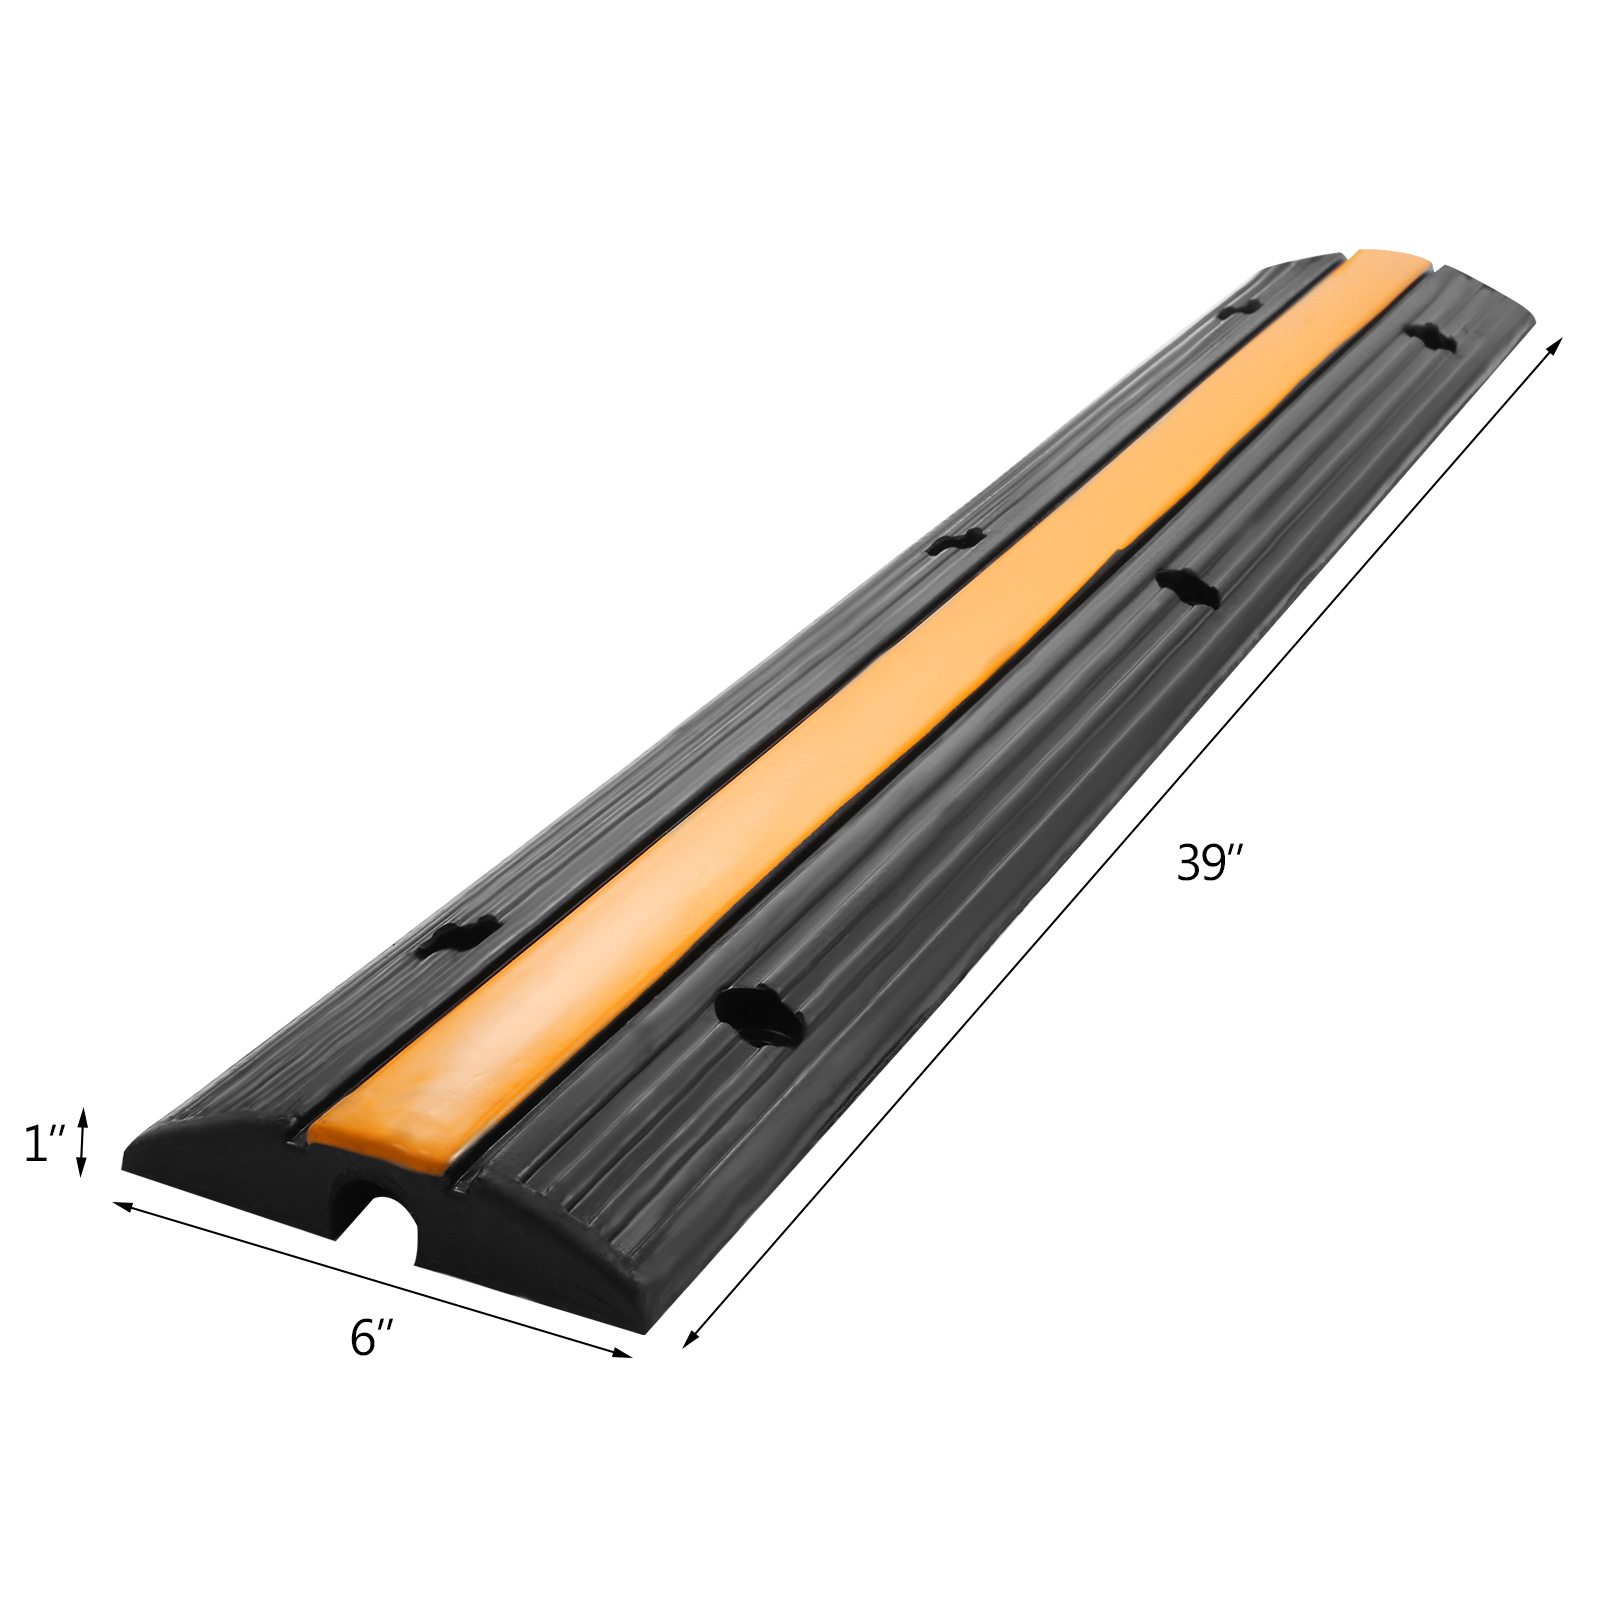 4 1 Channel Protective Cable Wire Floor Ramp Track Cover